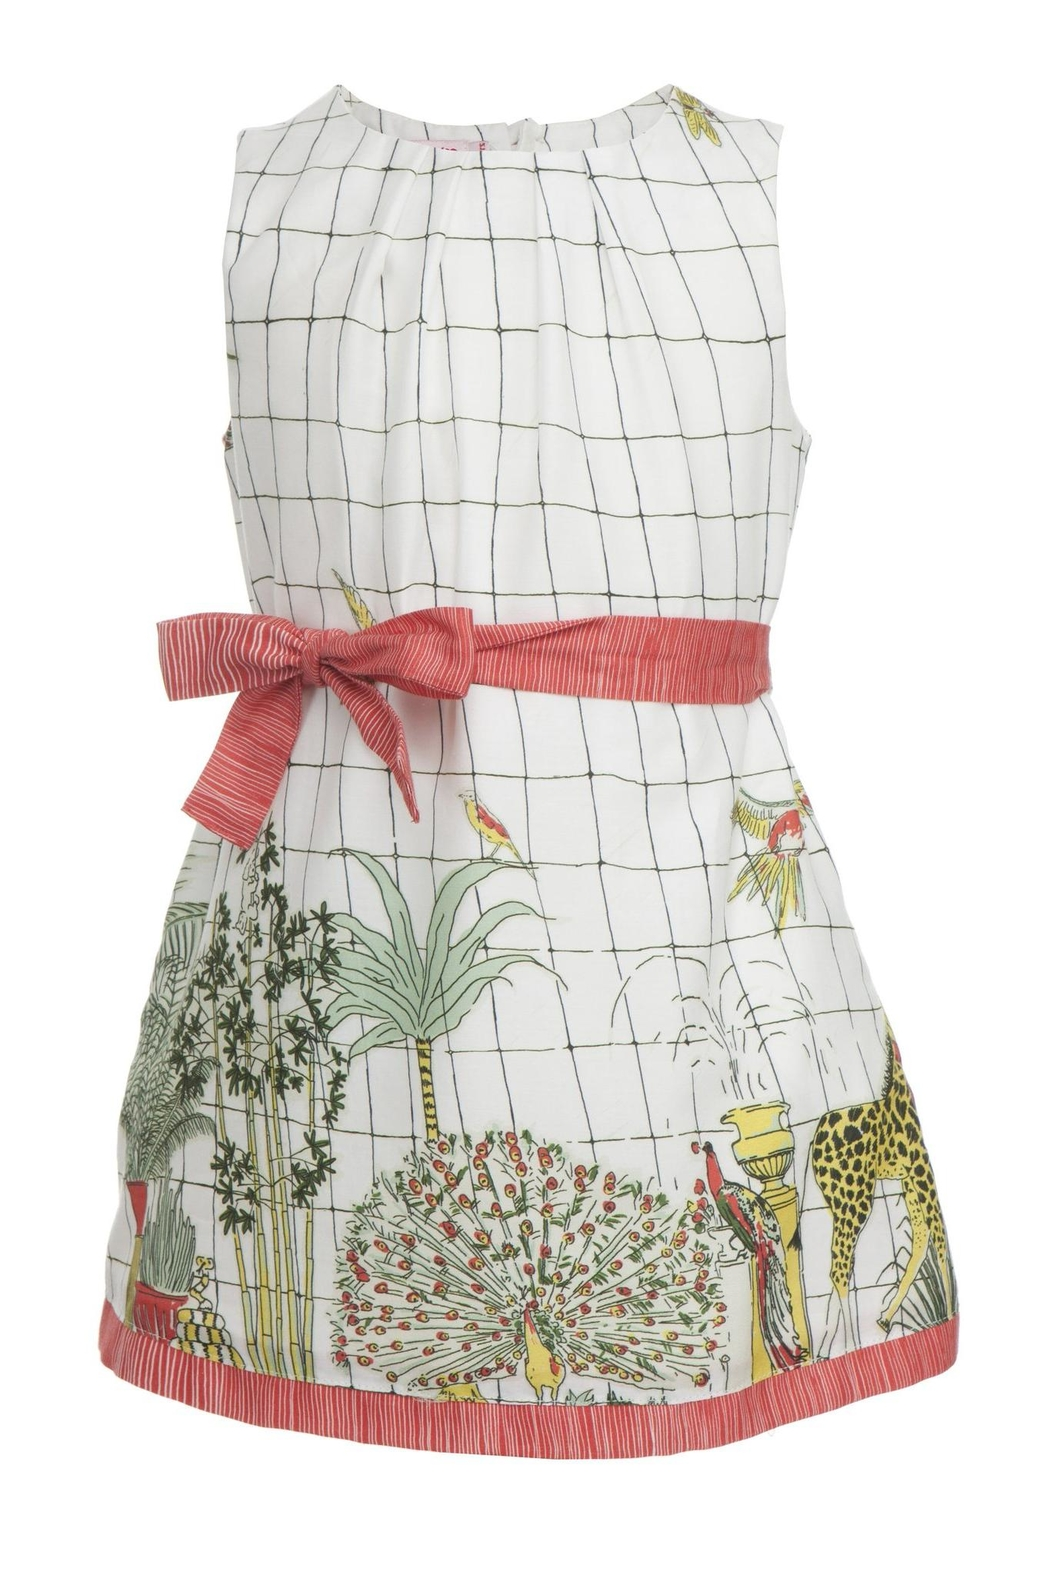 Bryony Olivia Zoo Dress - Main Image